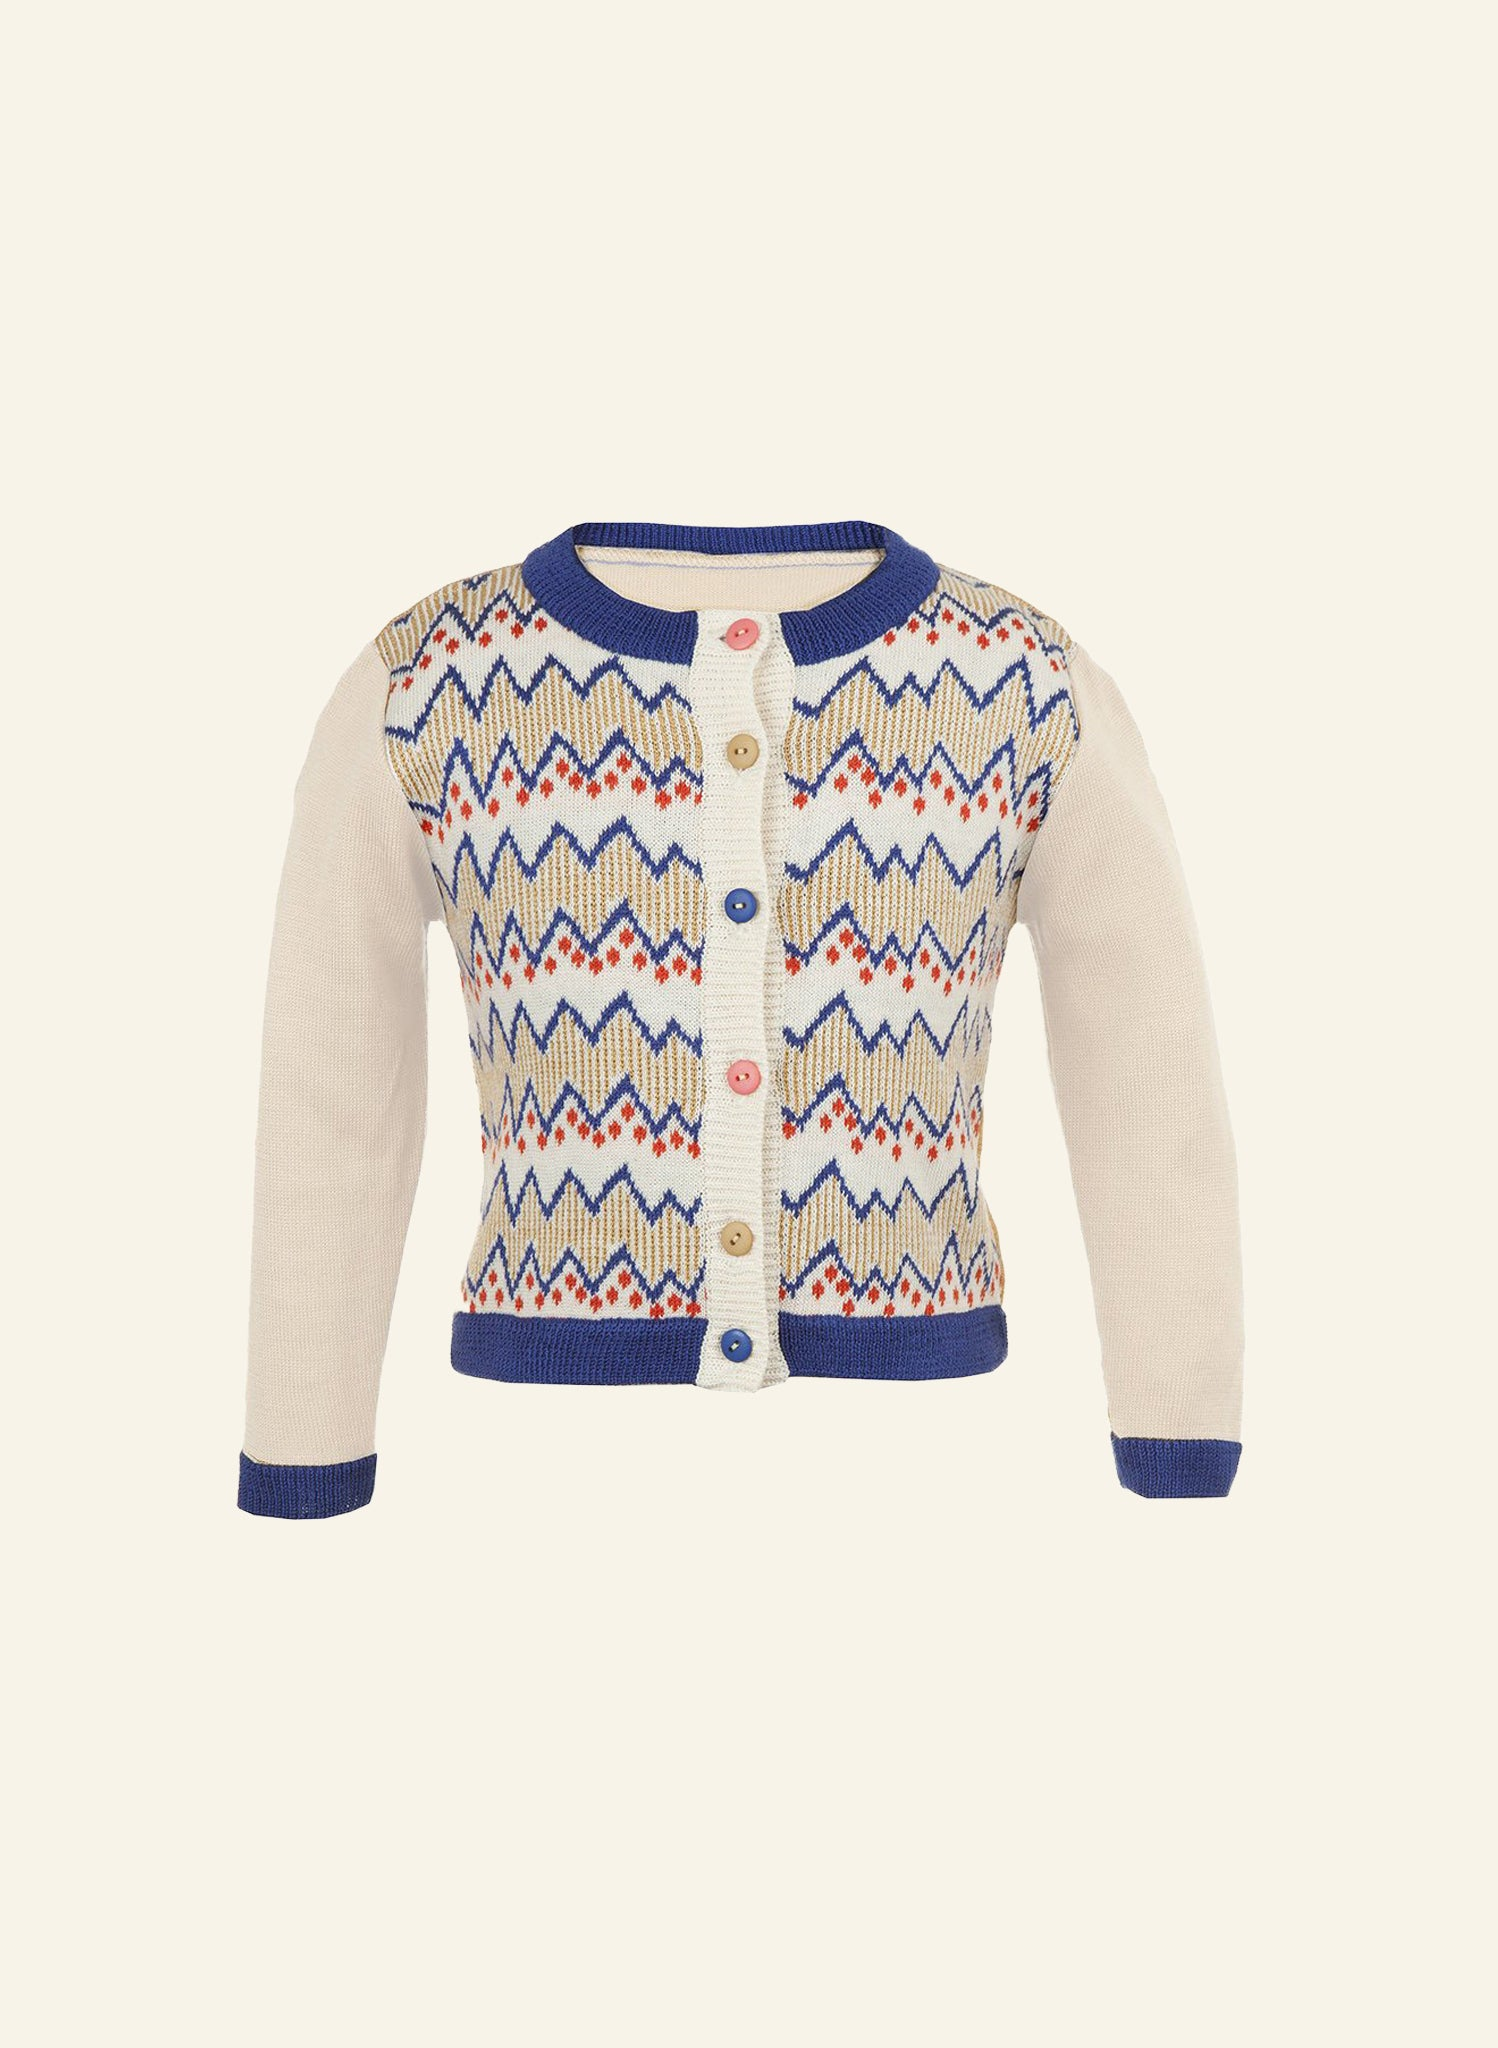 Children's Cardigan - Cream Zig Zag